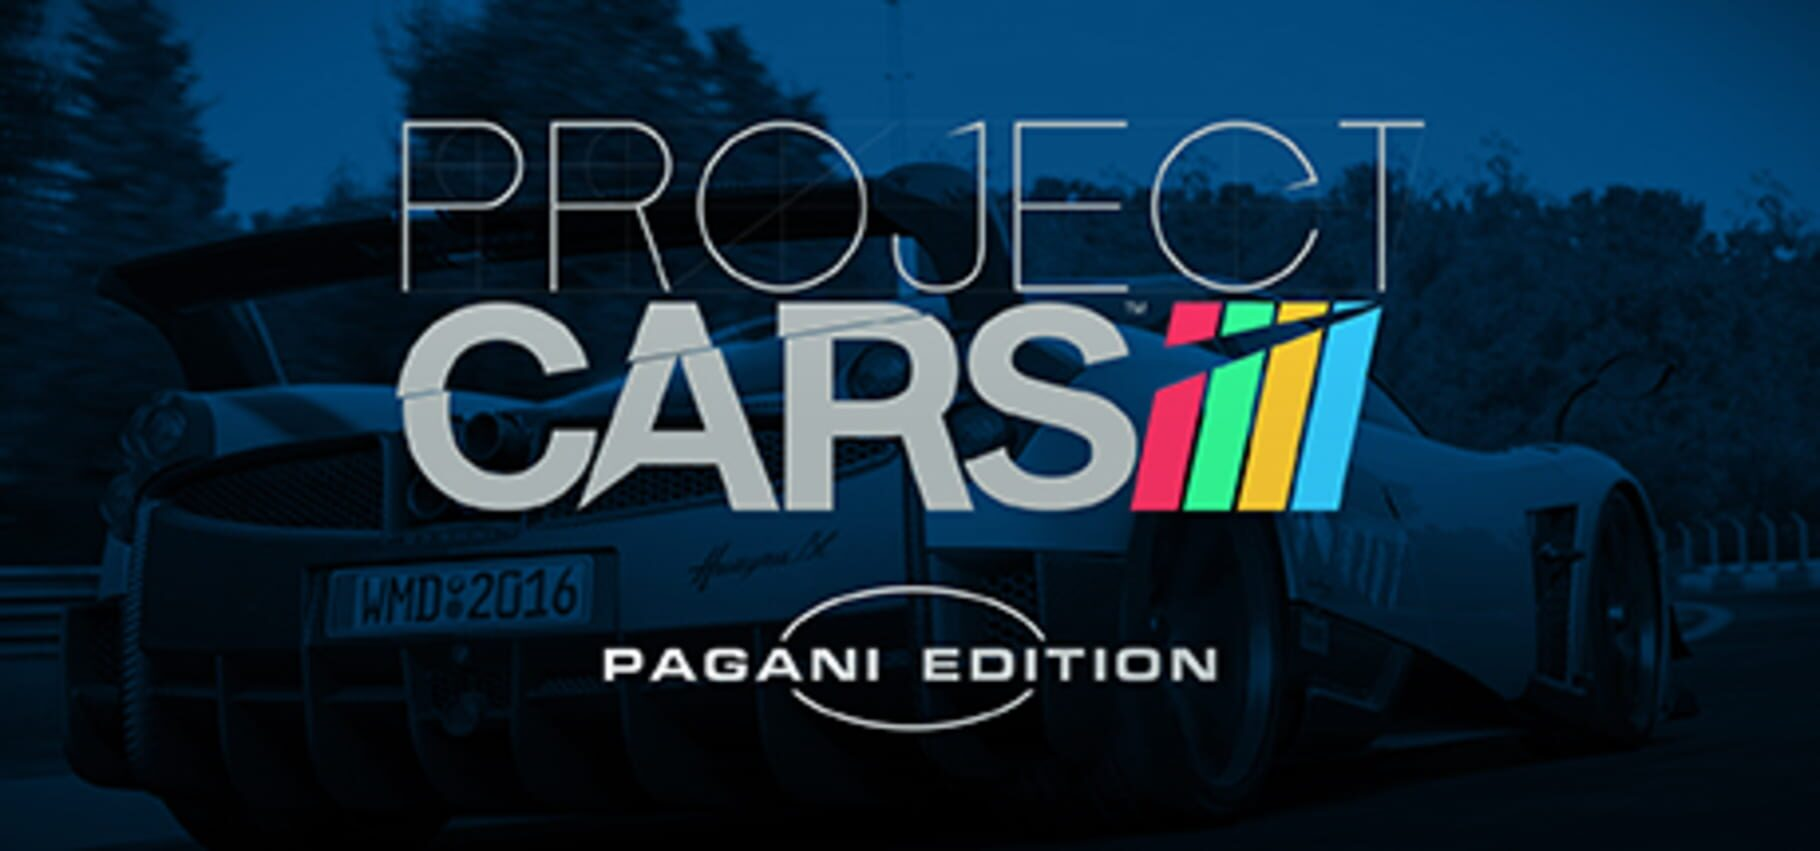 buy Project CARS: Pagani Edition cd key for all platform